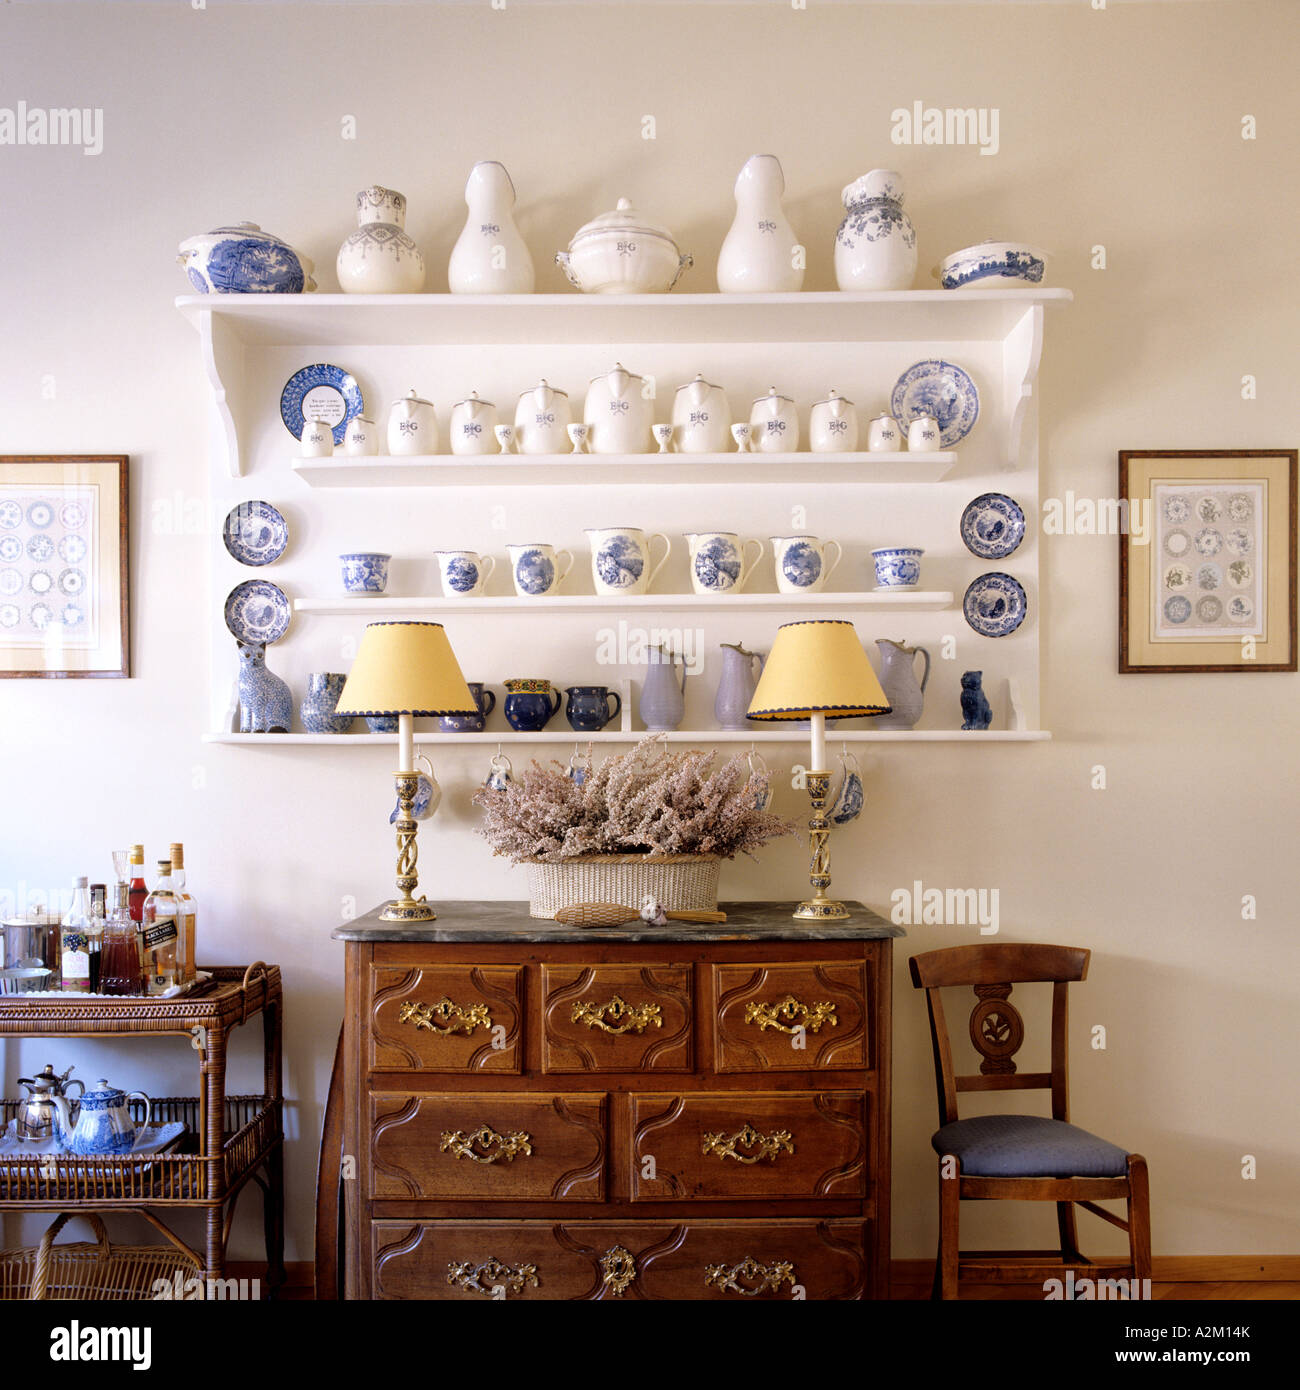 blue and white china displayed on a shelf in a traditional ...